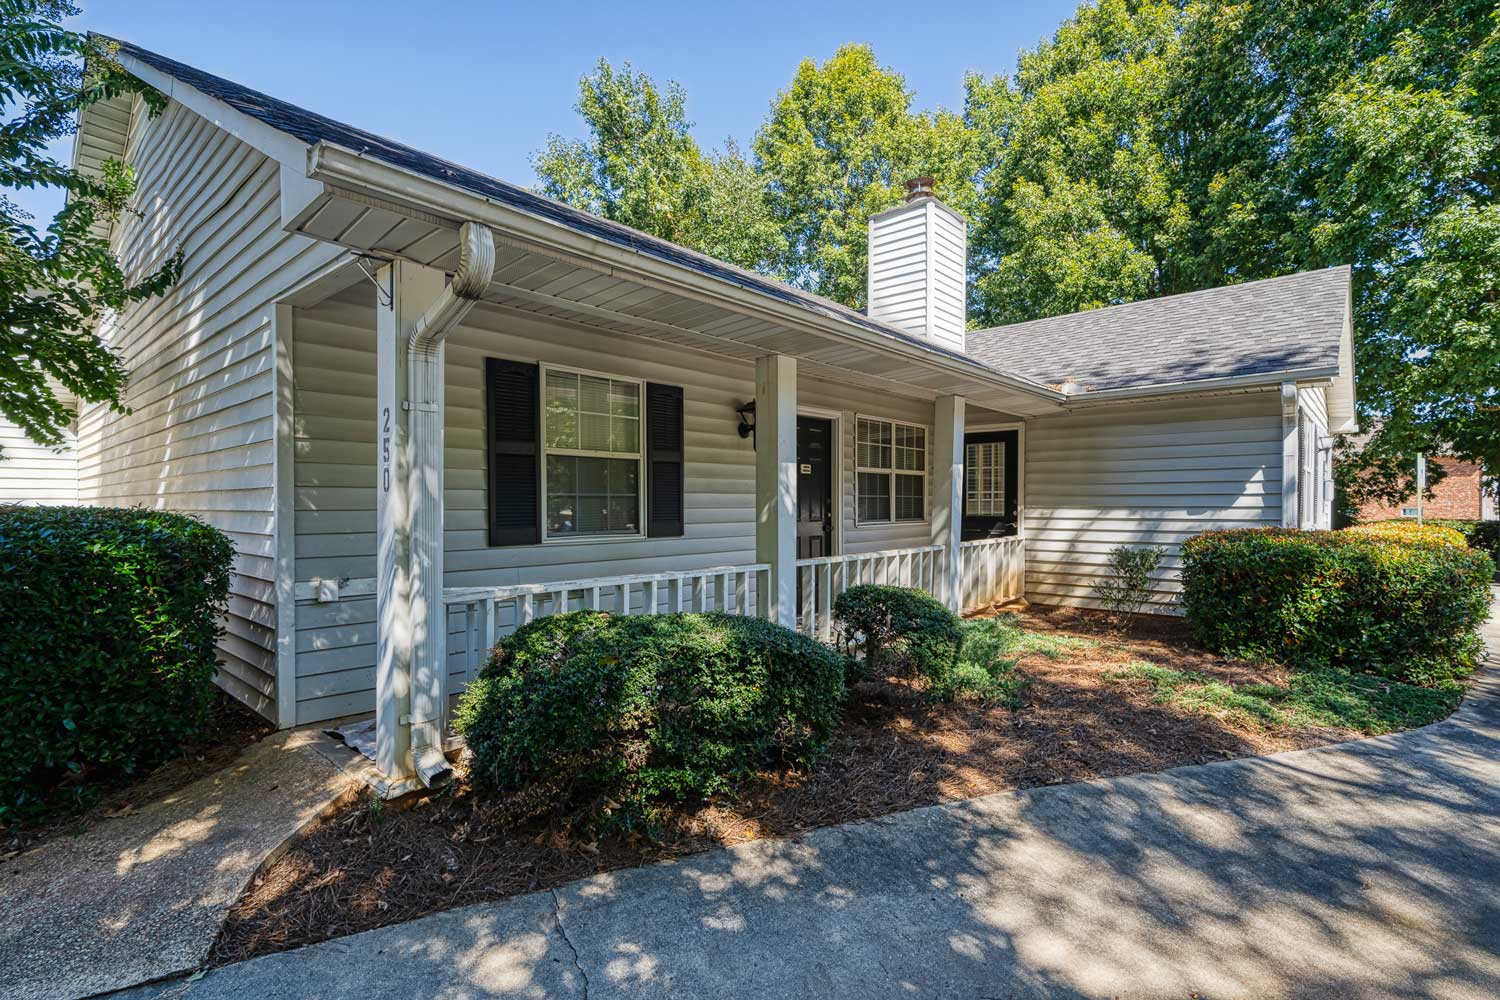 Apartment at Tall Oaks Apartments and Villas in Conyers, GA